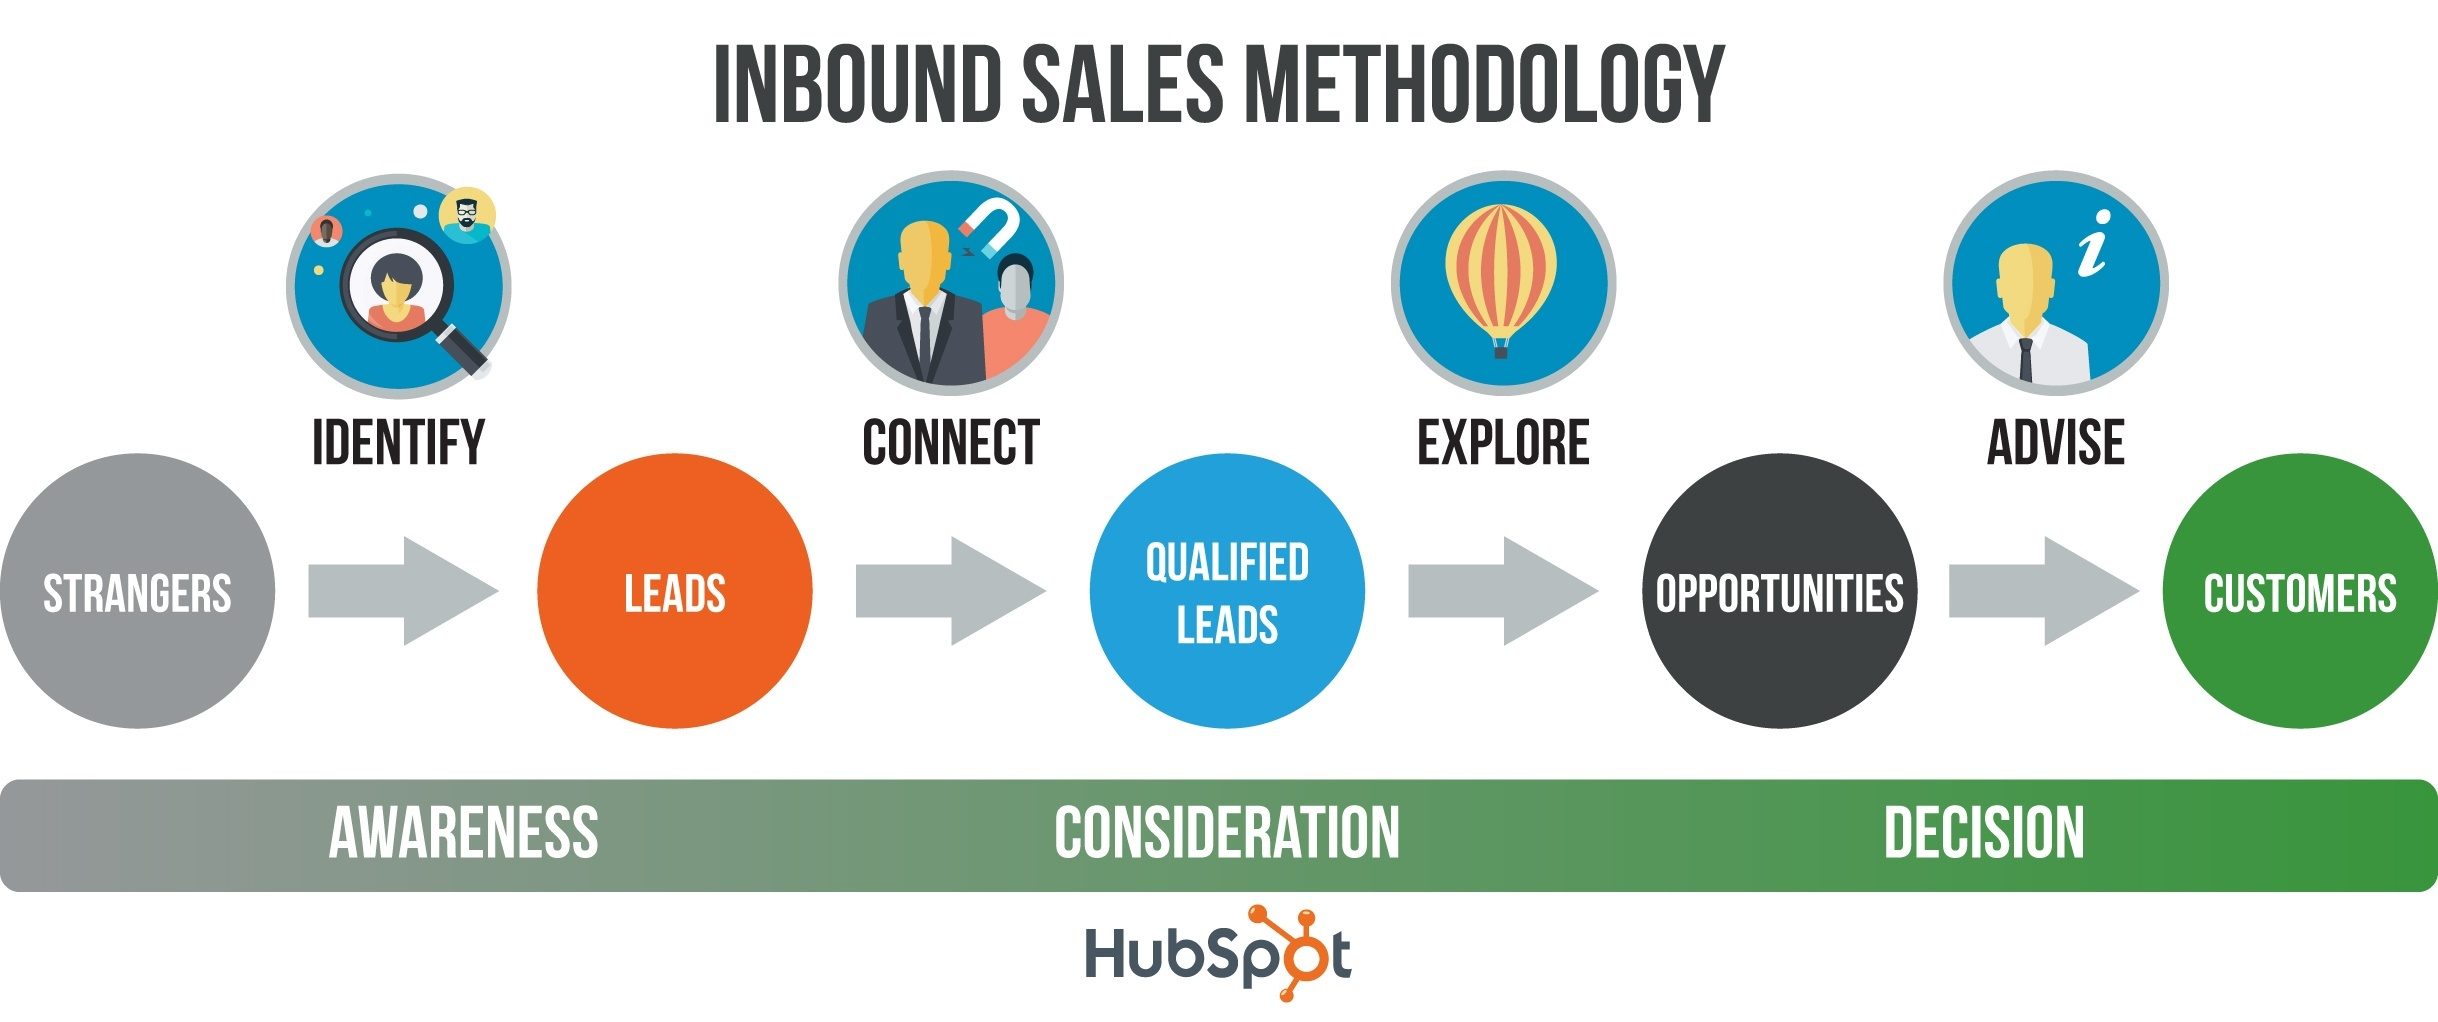 Inbound-Sales-Methodology.jpg